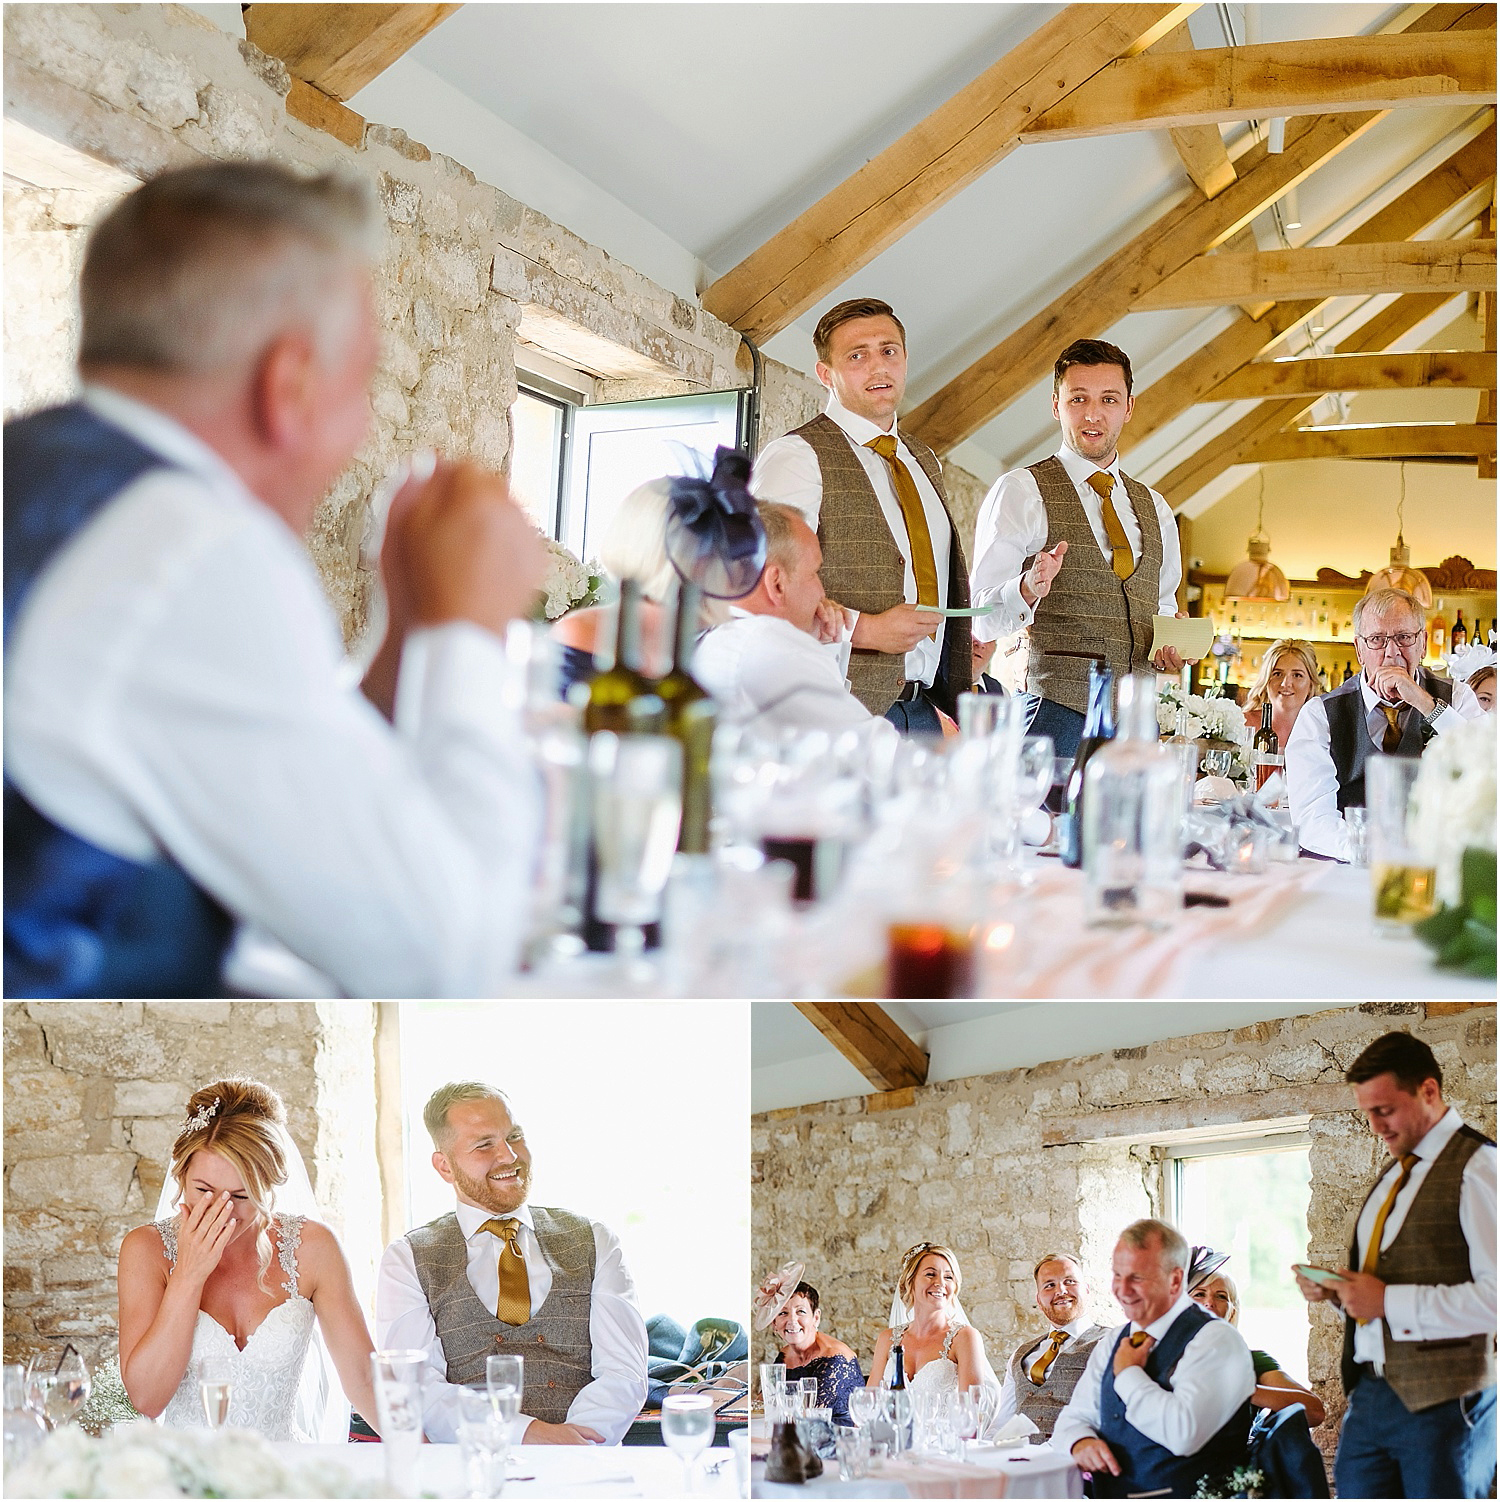 Wedding at Healey Barn - wedding photography by www.2tonephotography.co.uk 082.jpg